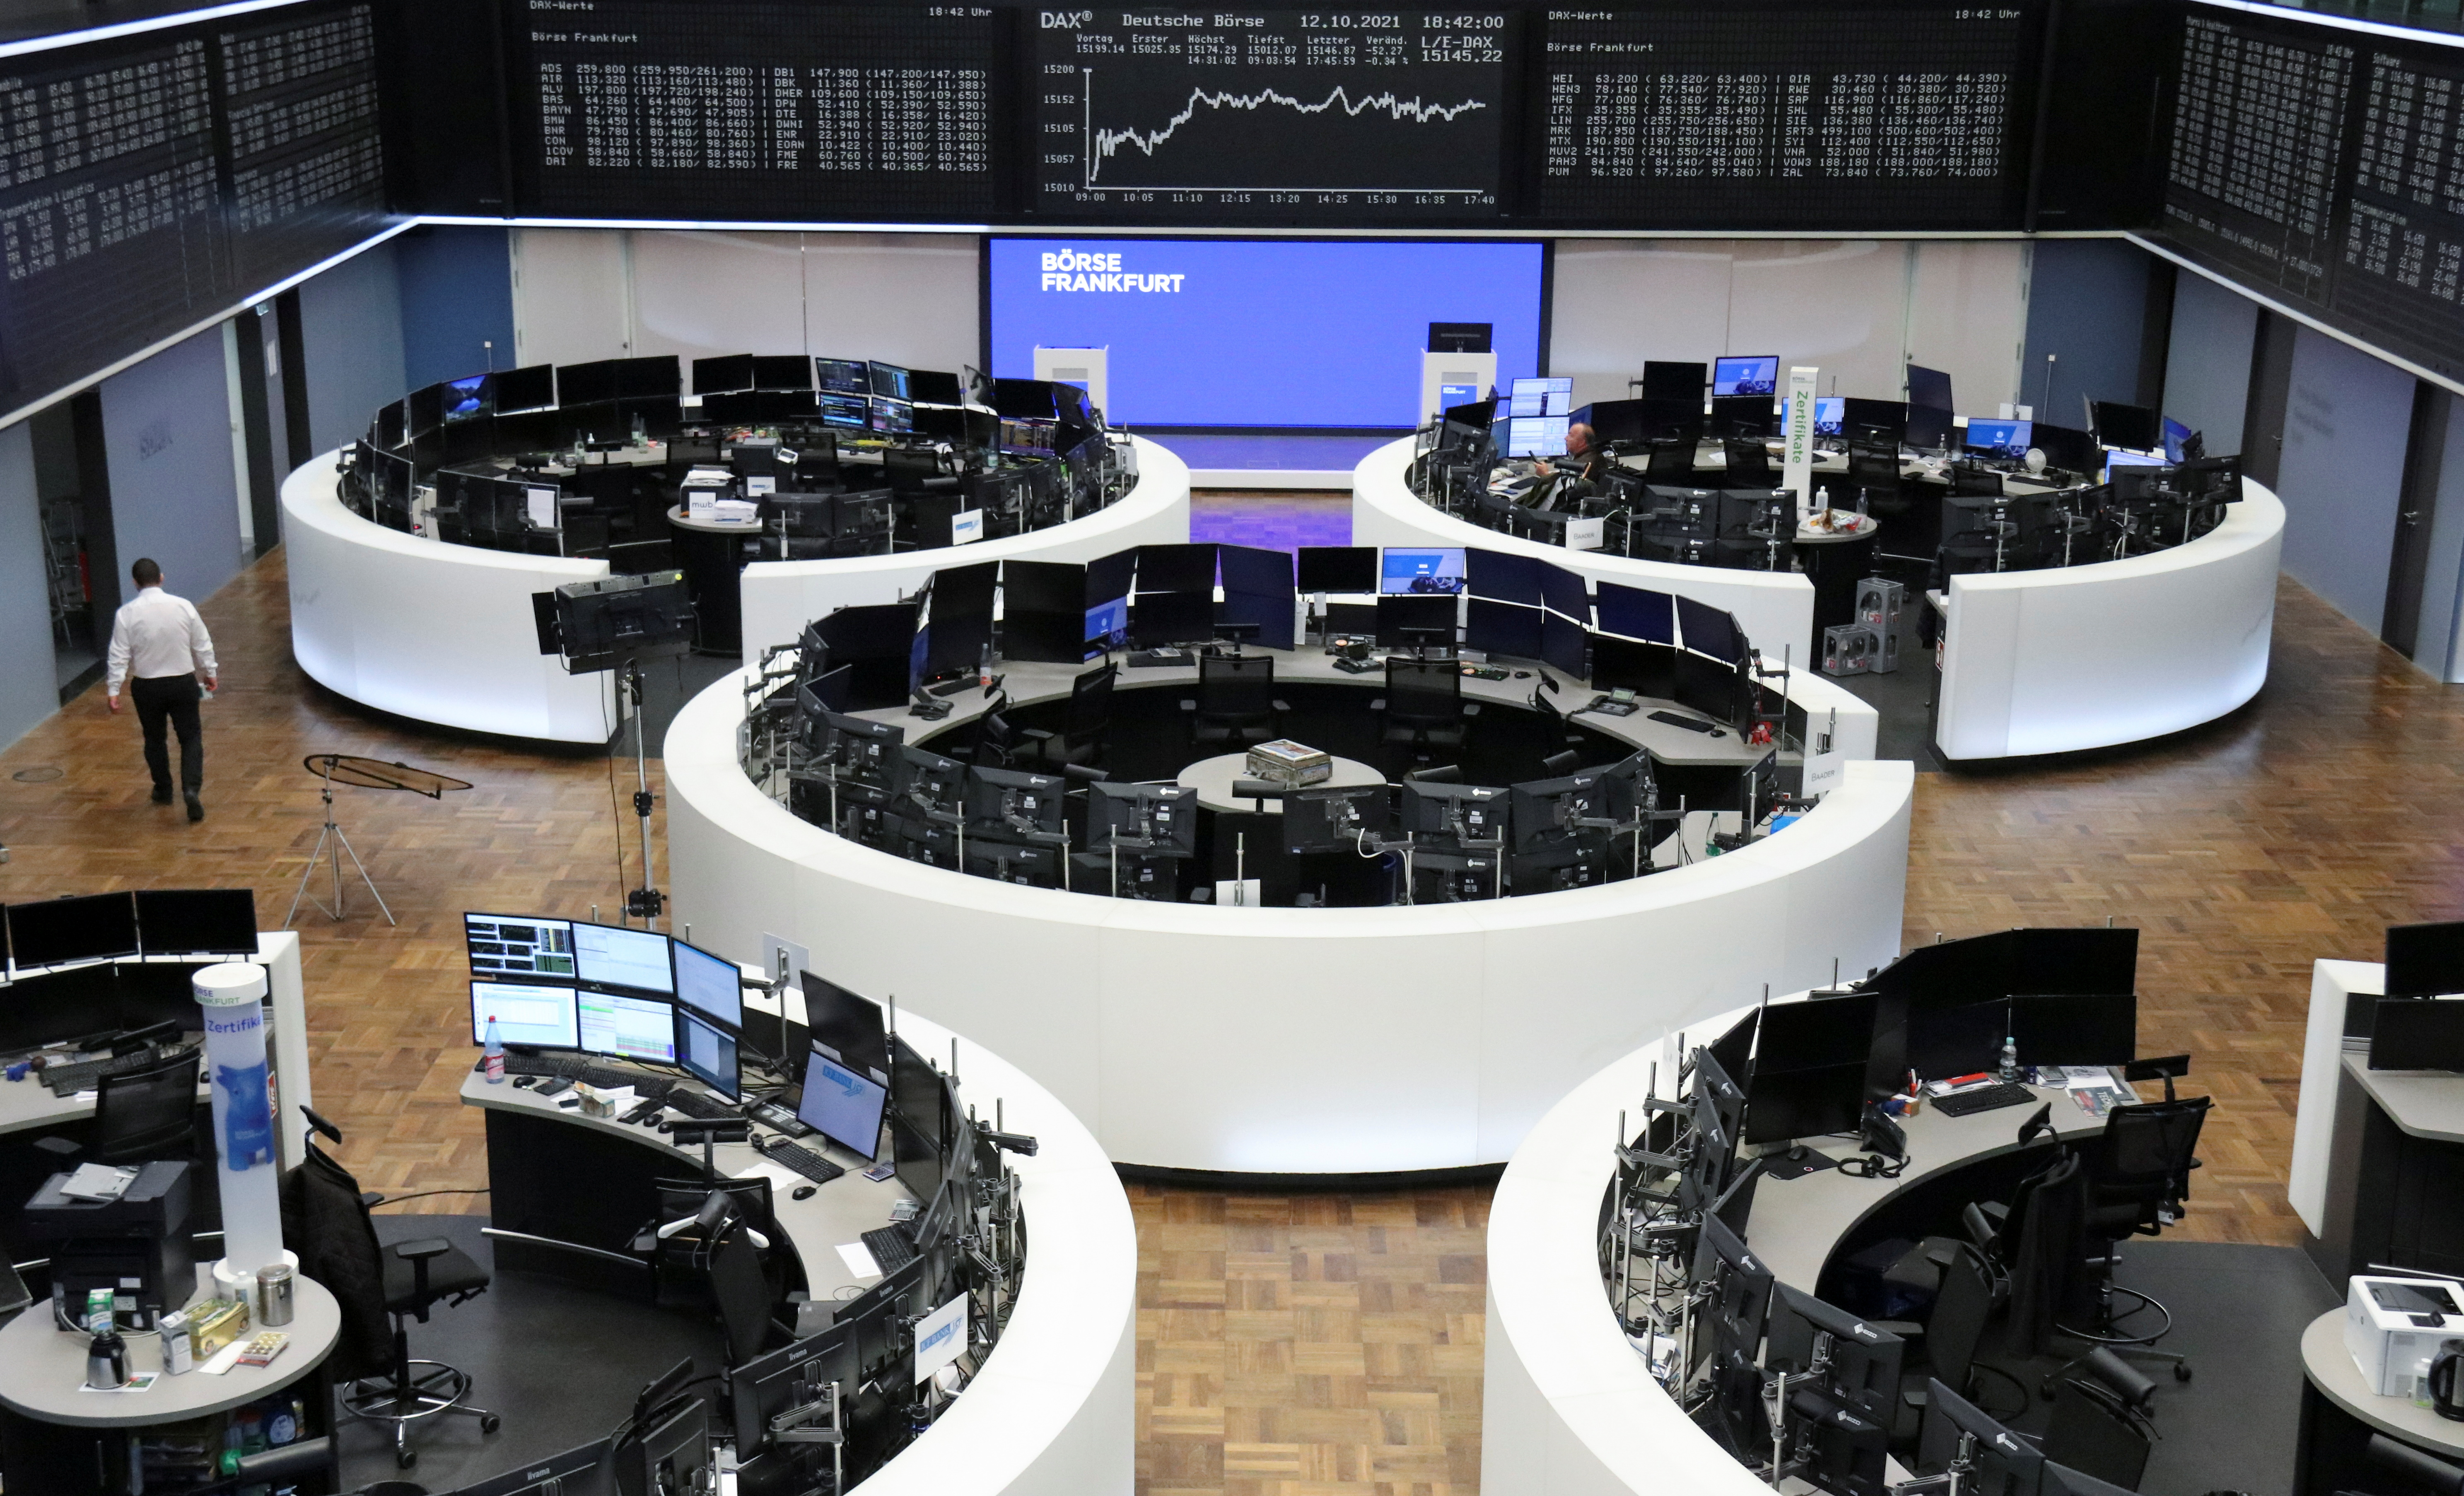 The German share price index DAX graph is pictured at the stock exchange in Frankfurt, Germany, October 12, 2021. REUTERS/Staff